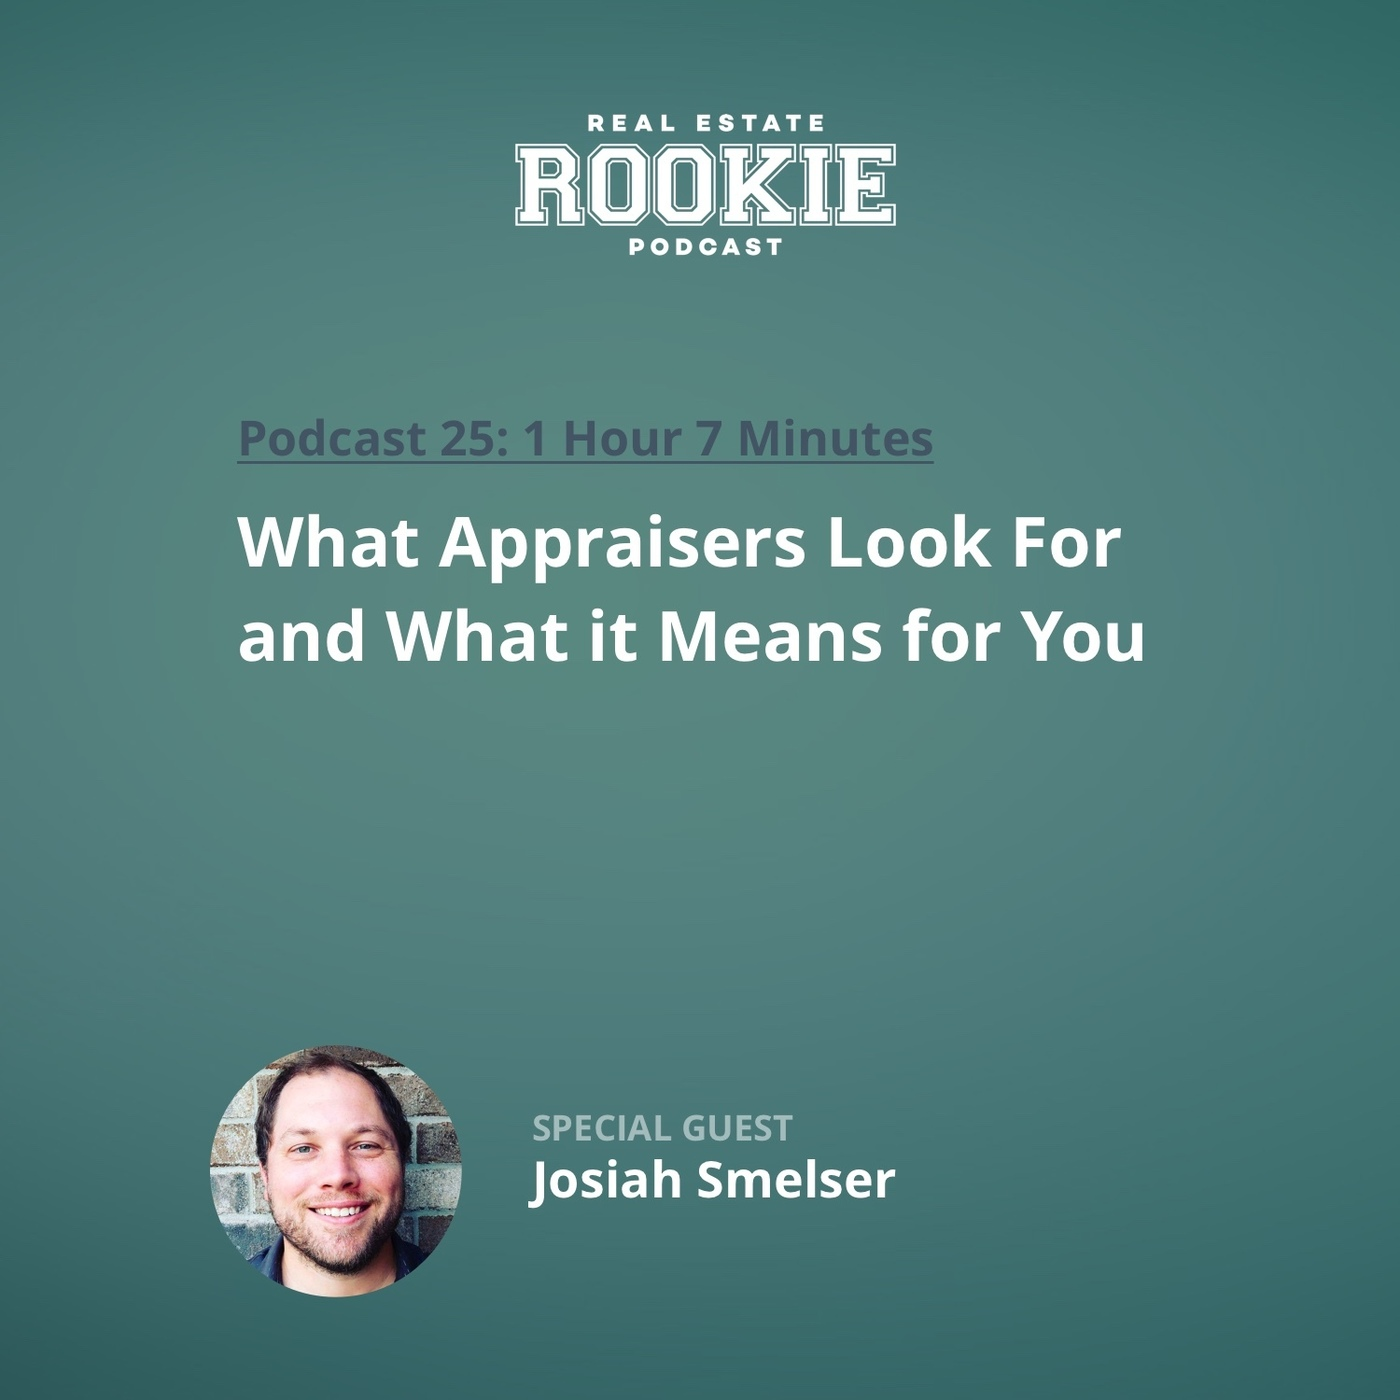 What Appraisers Look For and What it Means for You with Investor/Appraiser Josiah Smelser